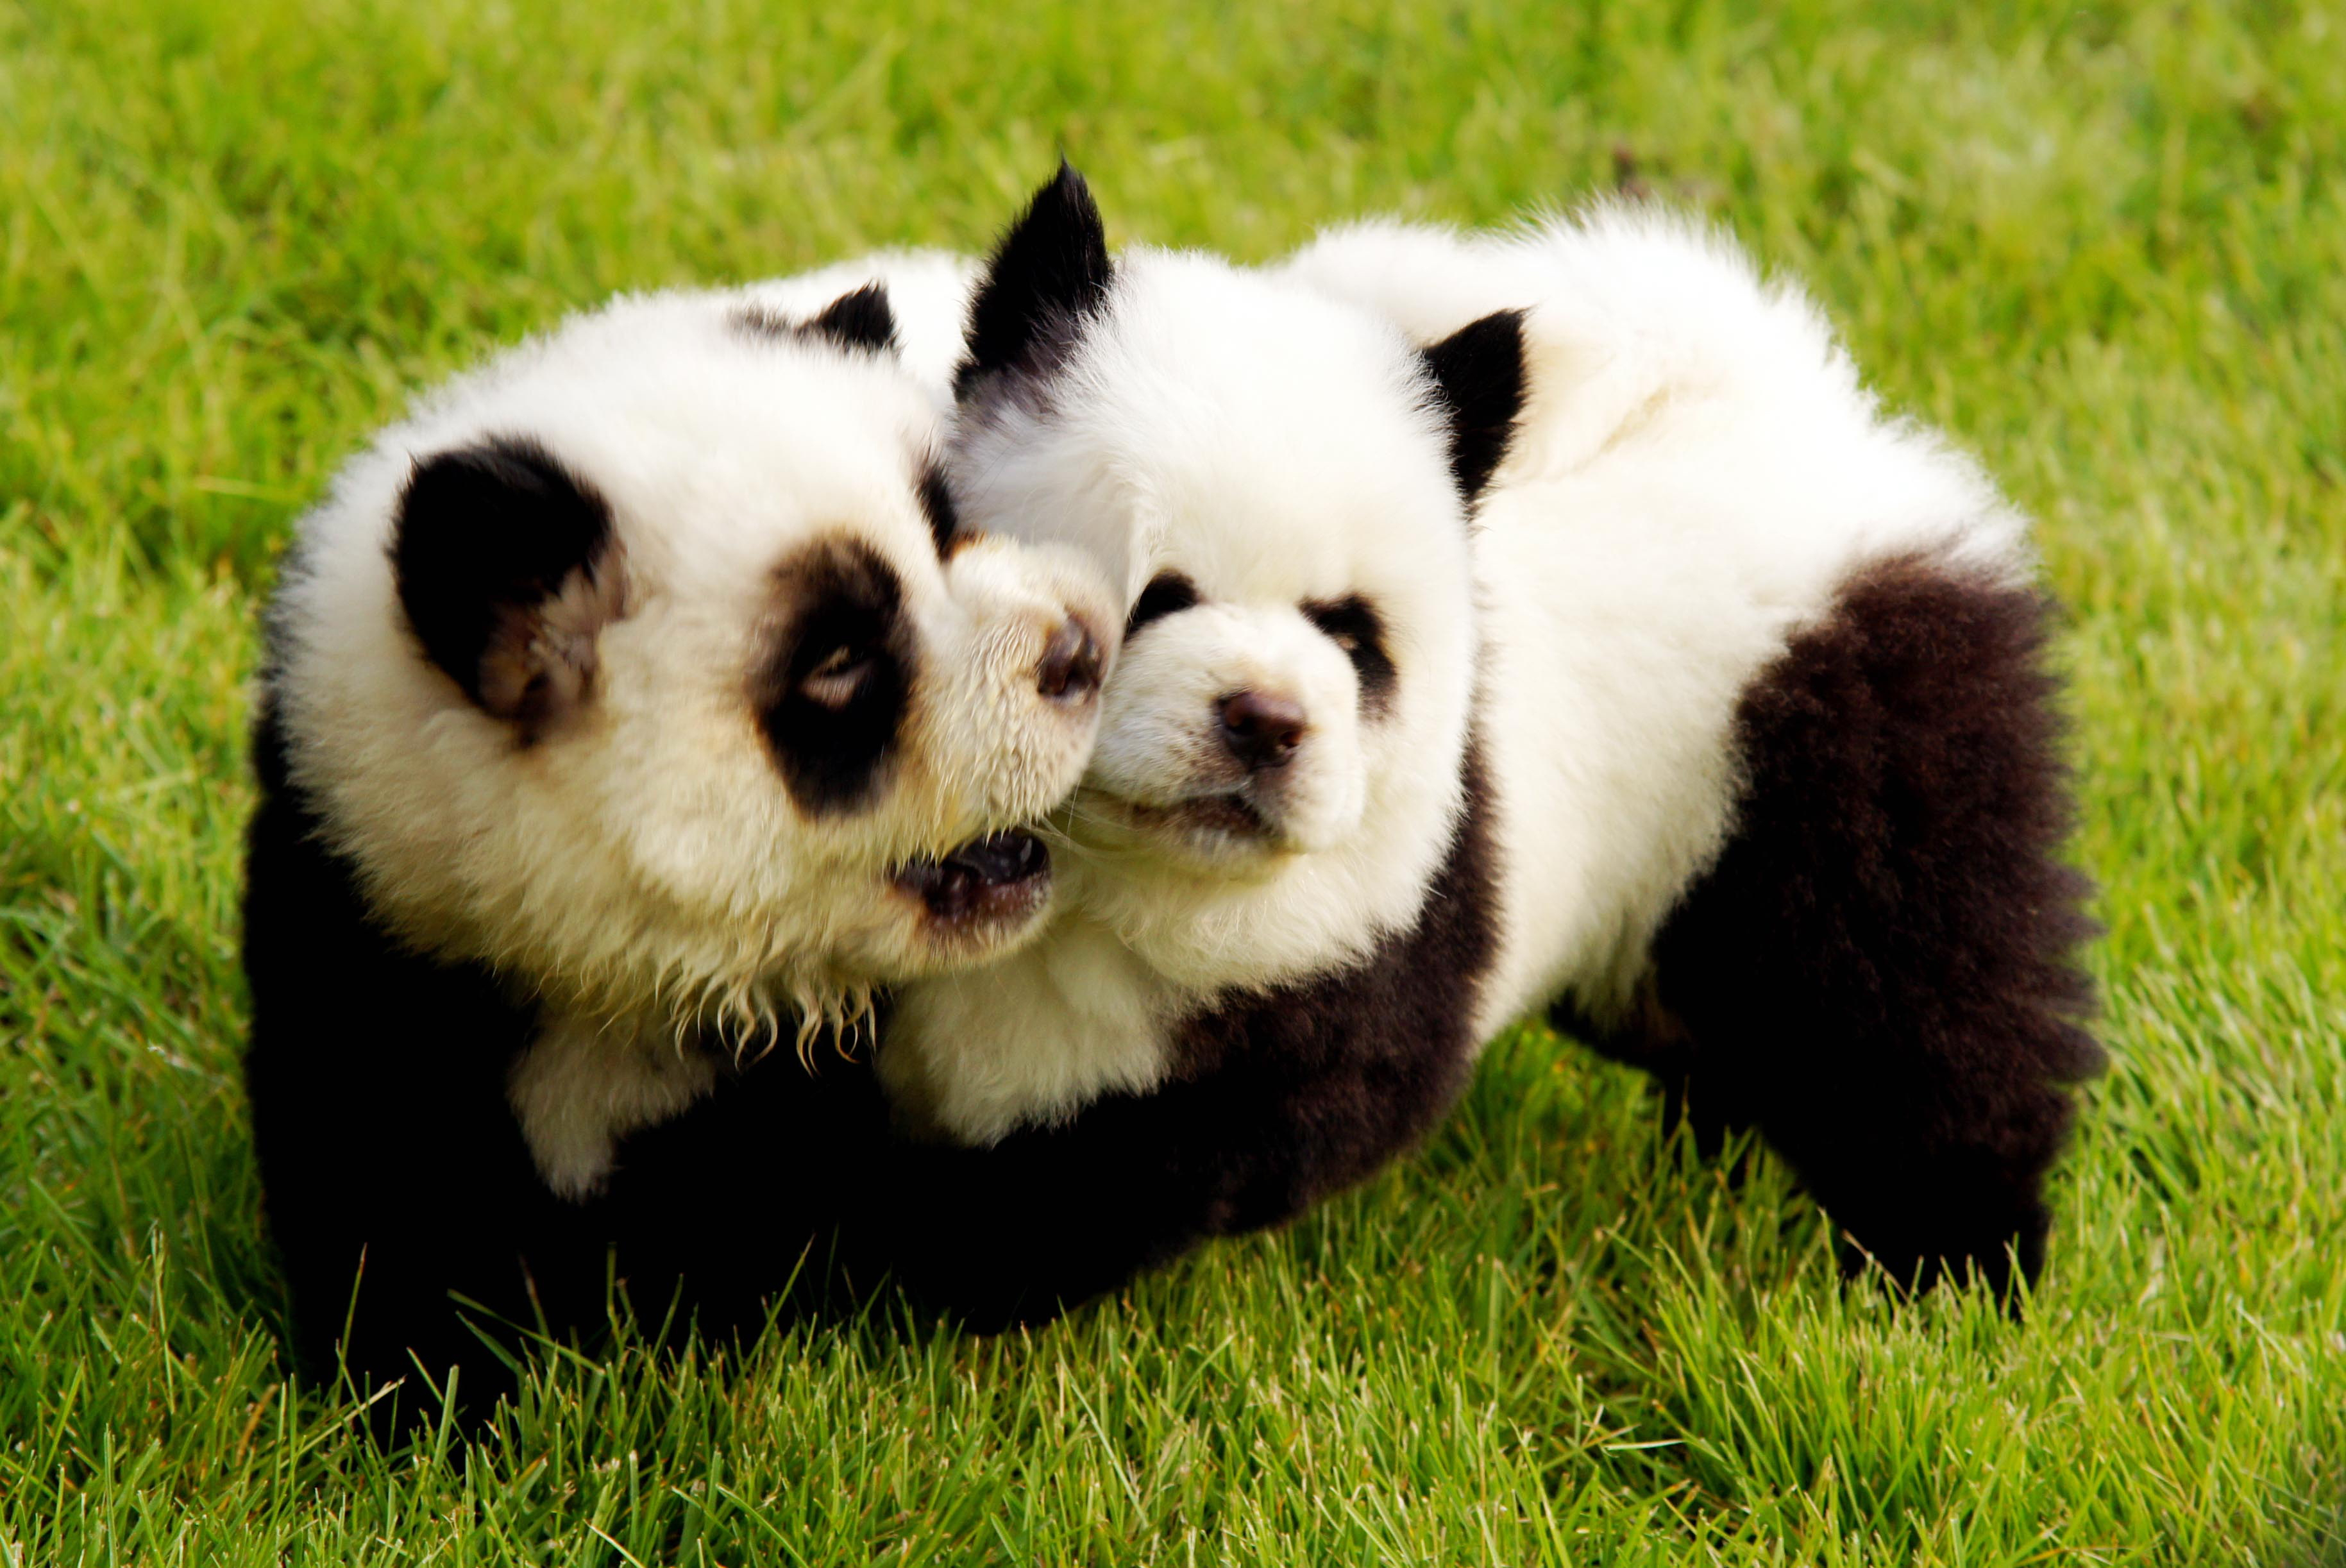 A dog is painted as a baby giant panda during the launch of a new pet park at Dahe Mincui Park on June 5, 2010 in Zhengzhou, Henan Province of China.